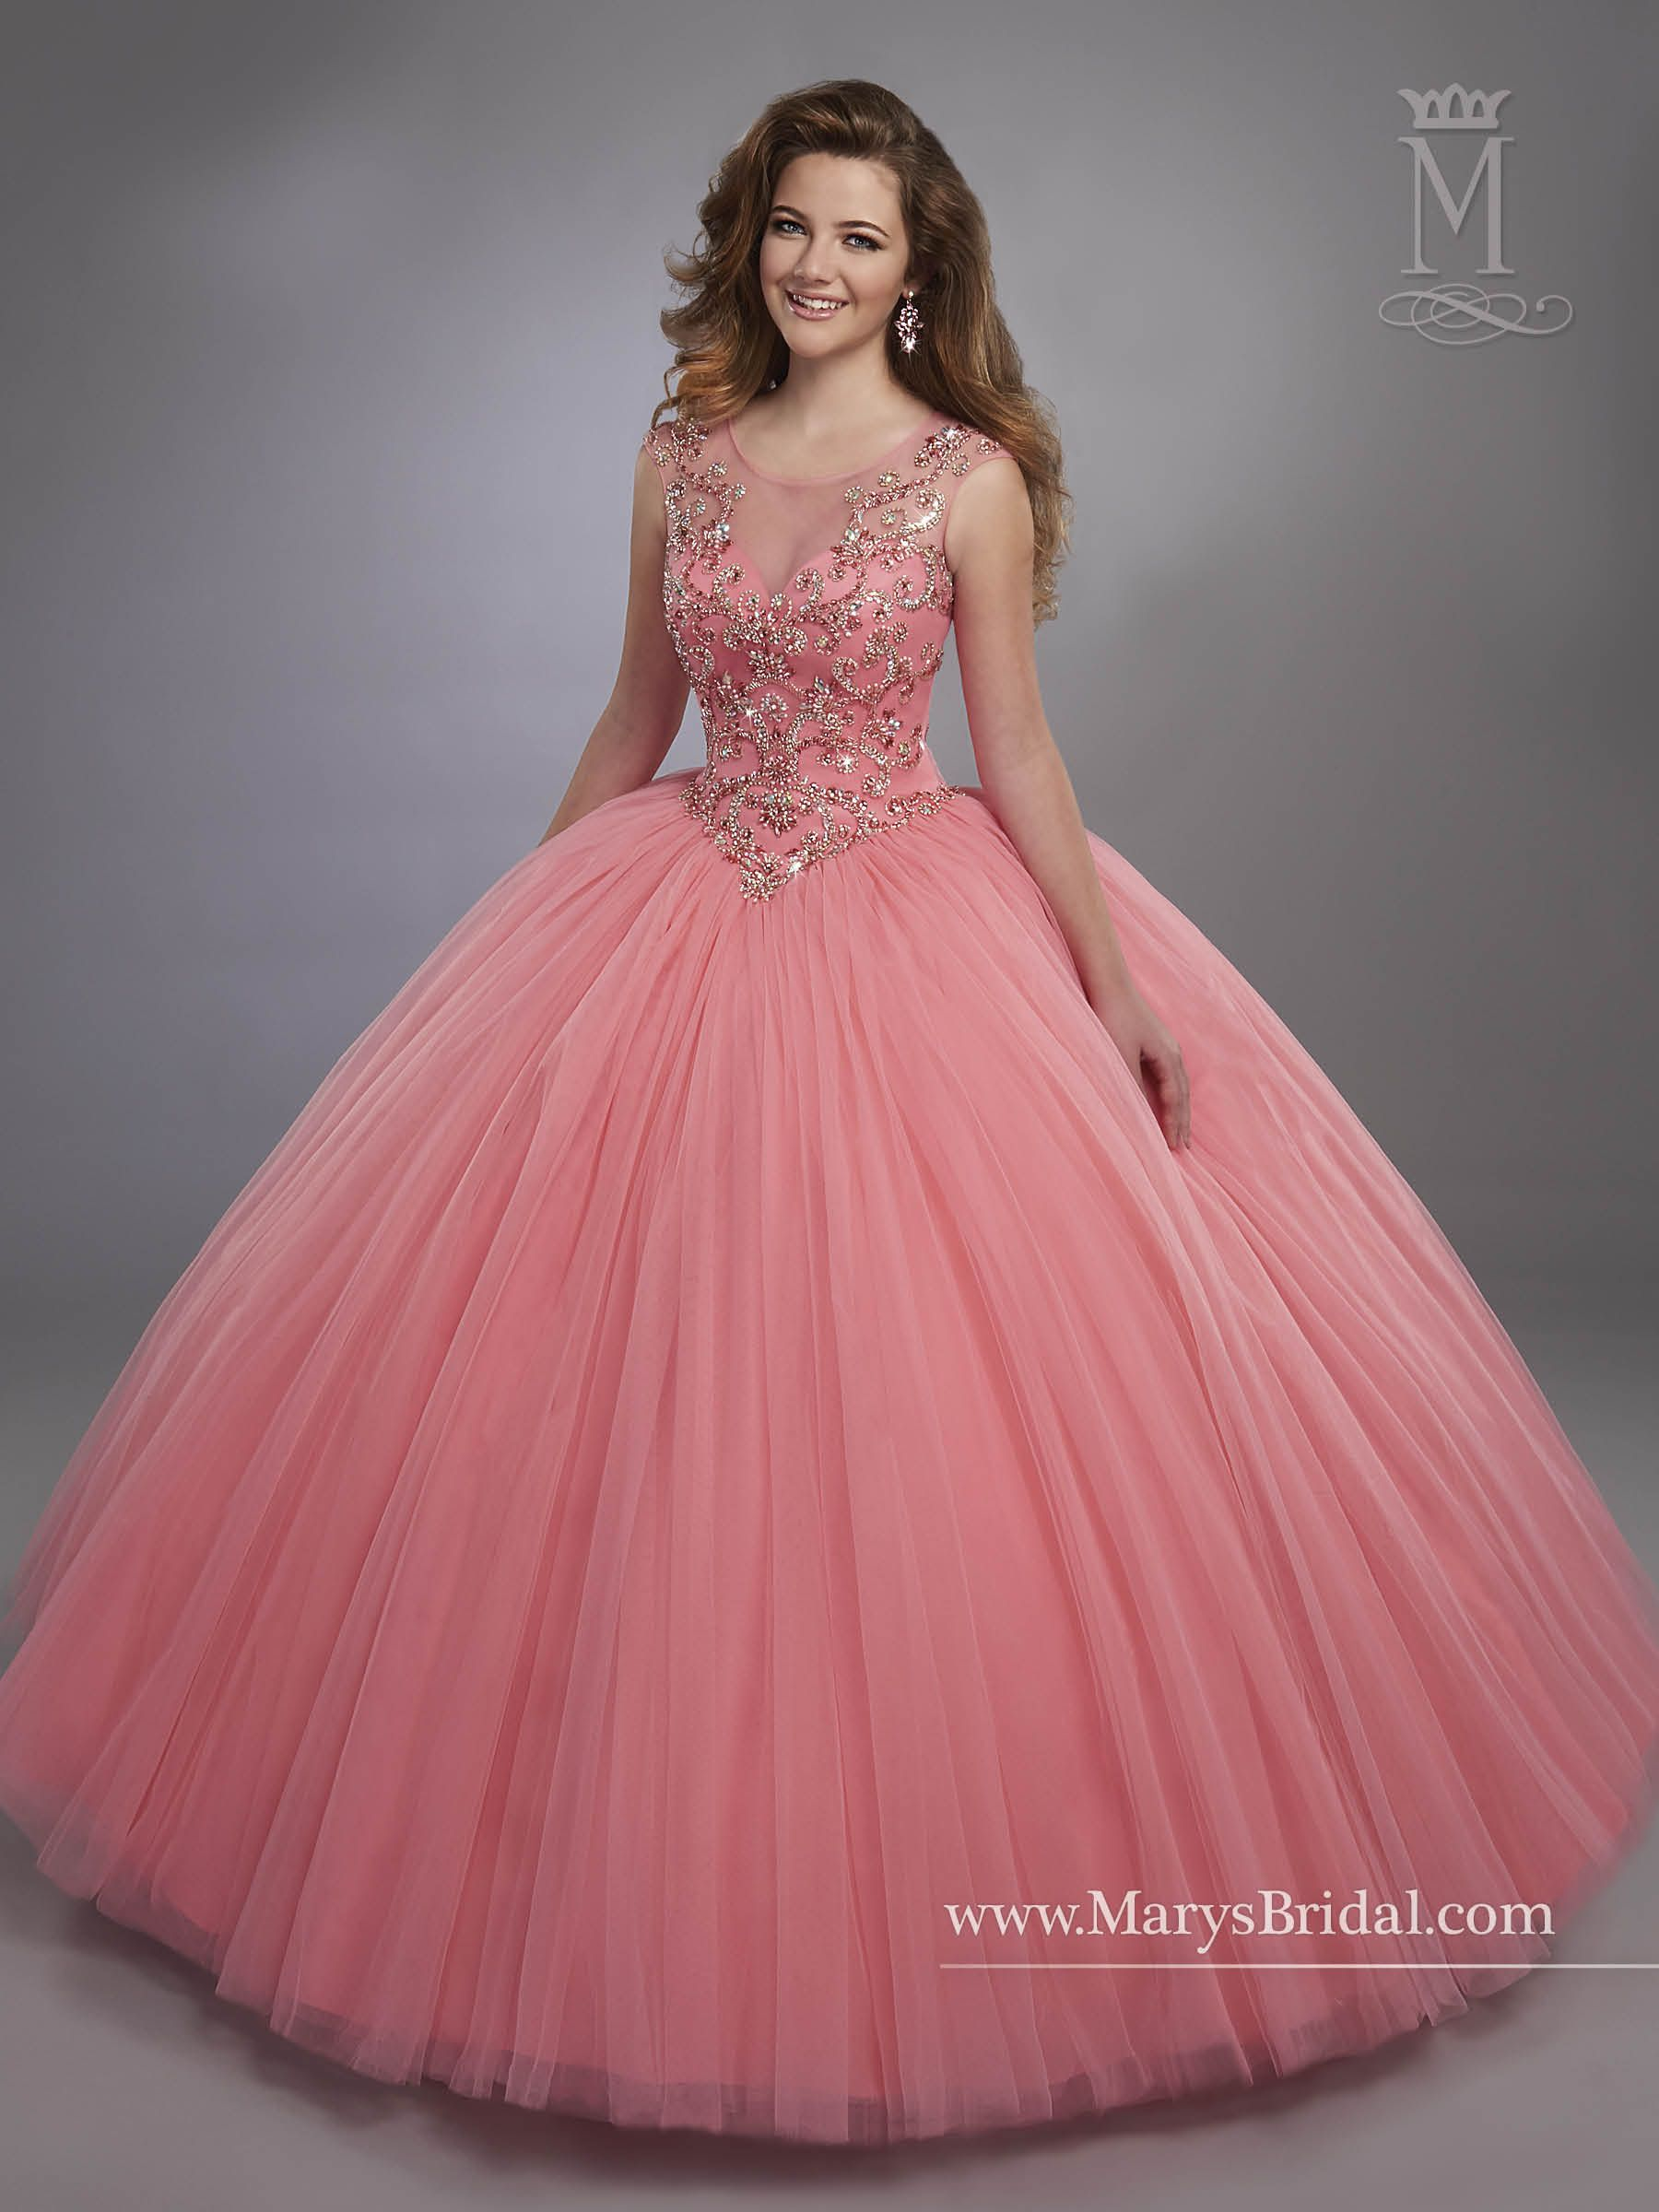 Style 4762 | All shades of pink doll dresses | Pinterest | 15 años ...